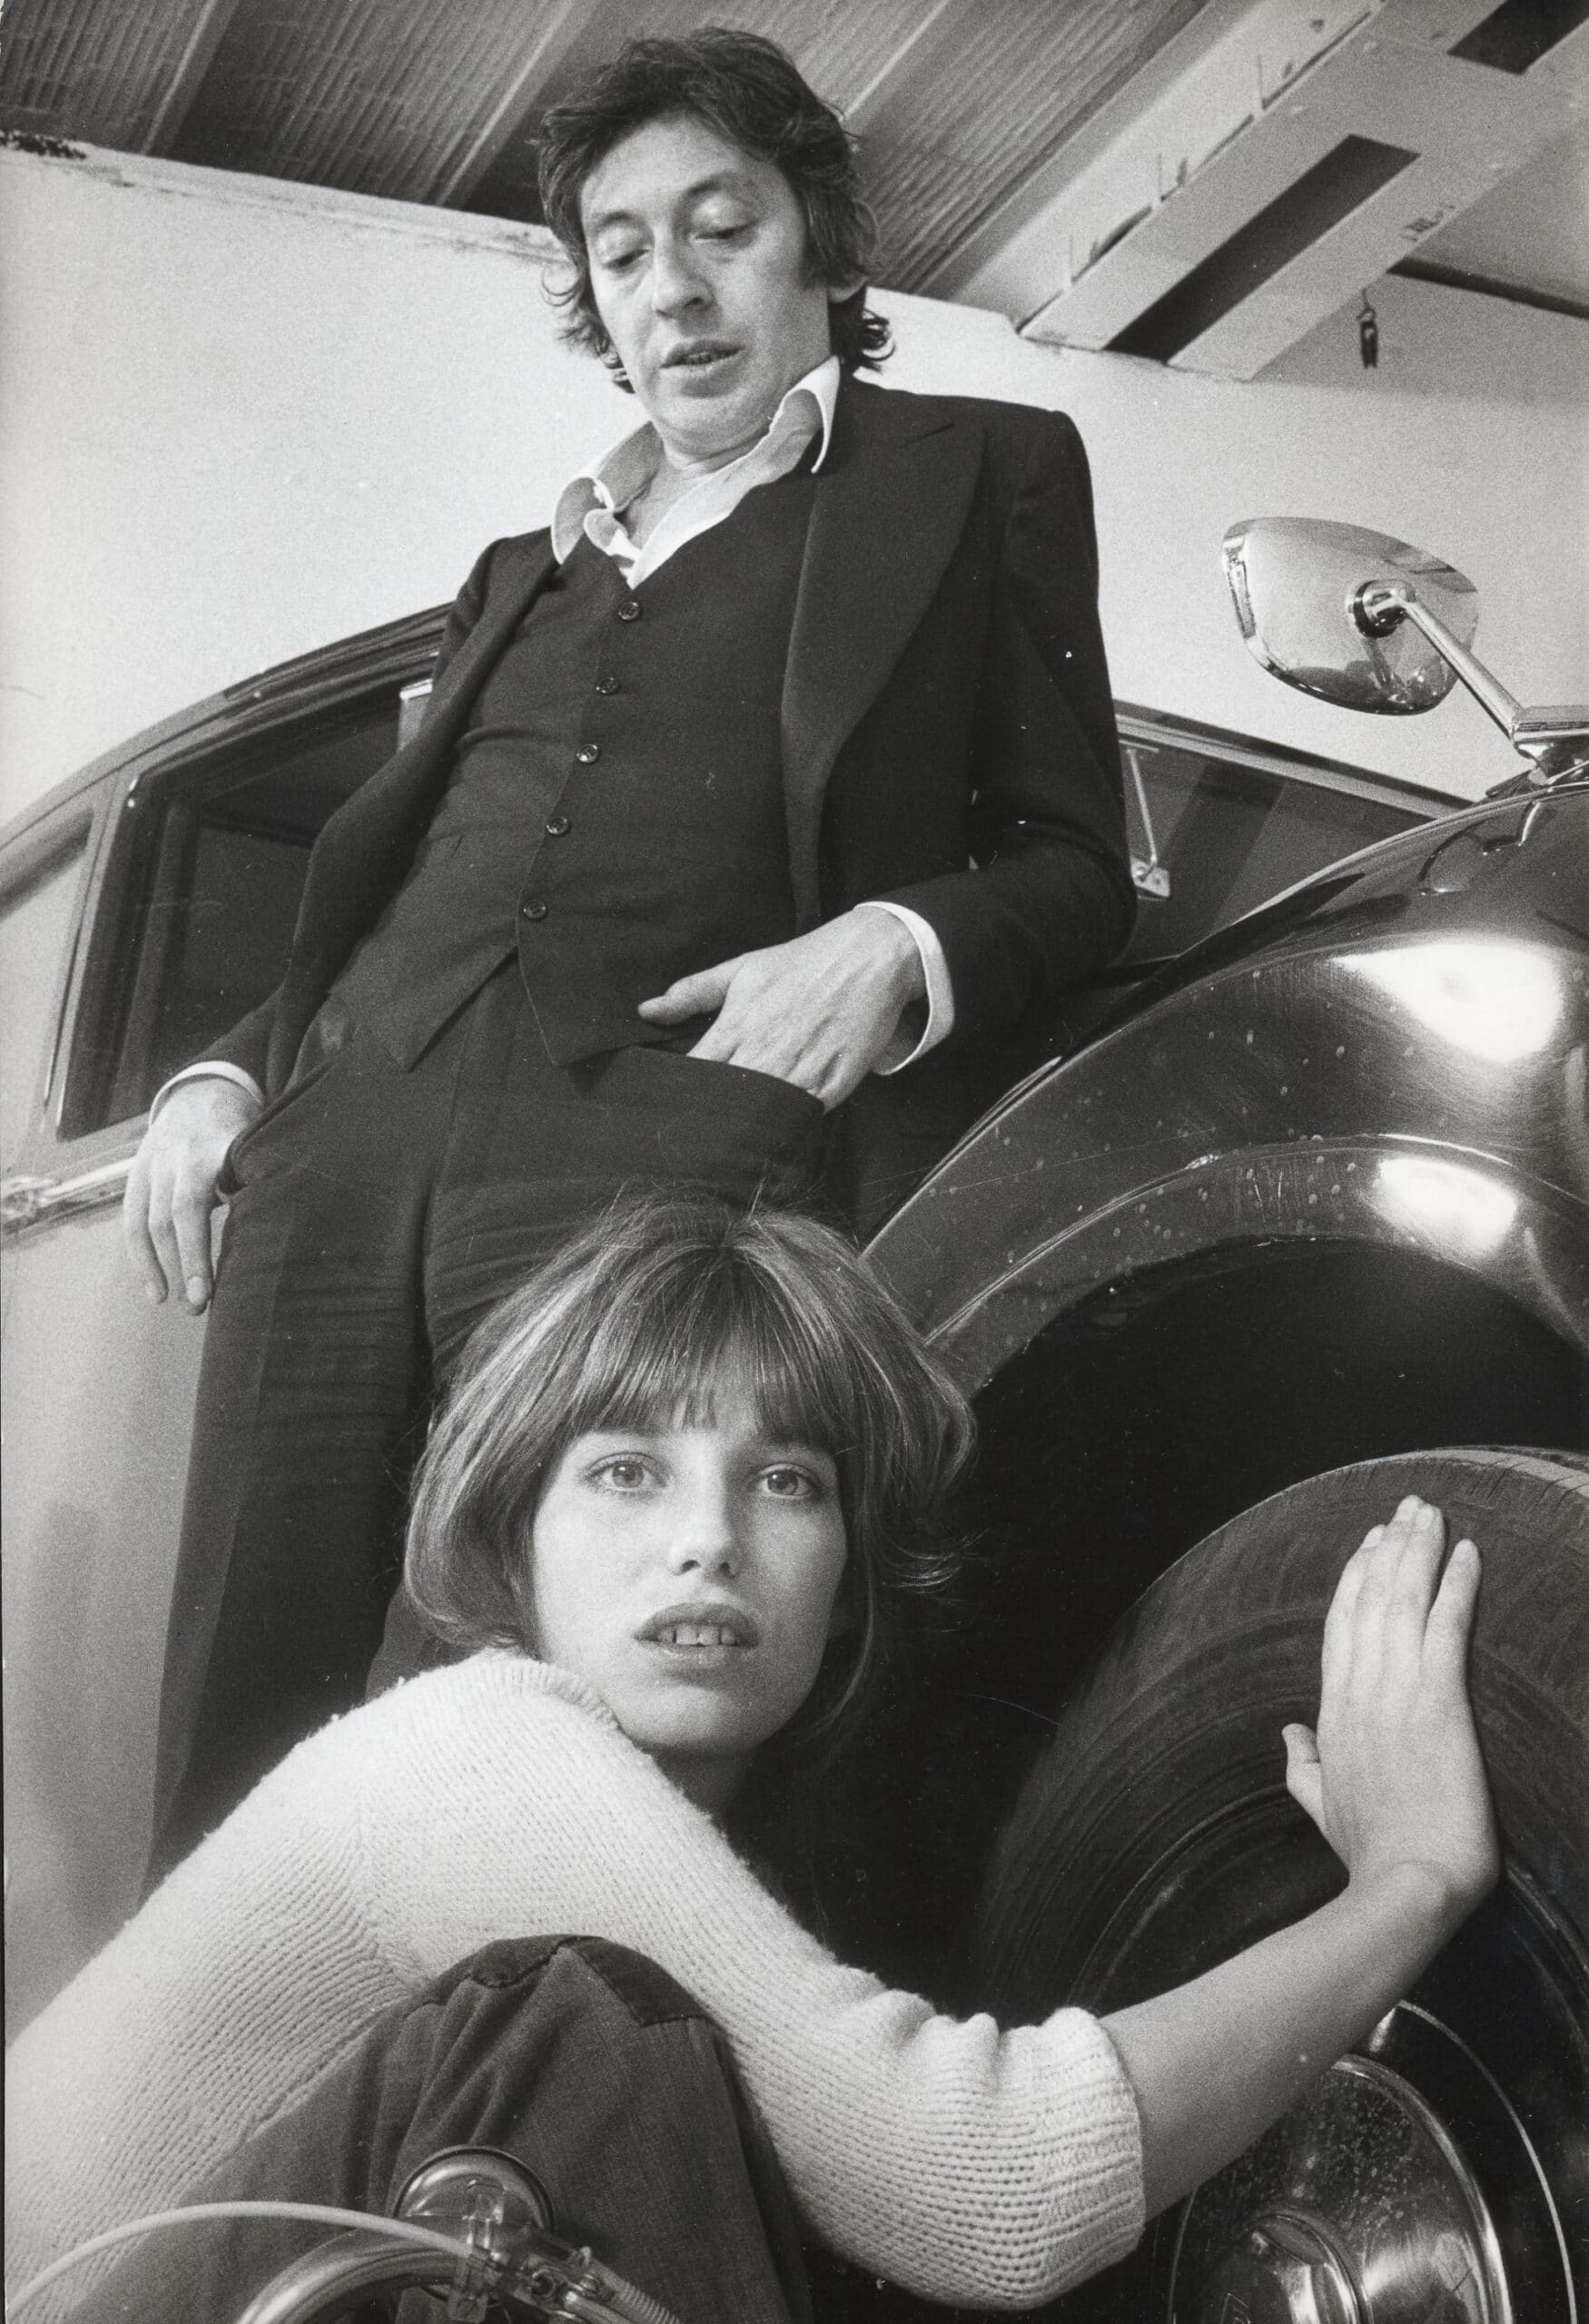 Serge Gainsbourg Jane Birkin shooting photo Histoire de Melody Nelson